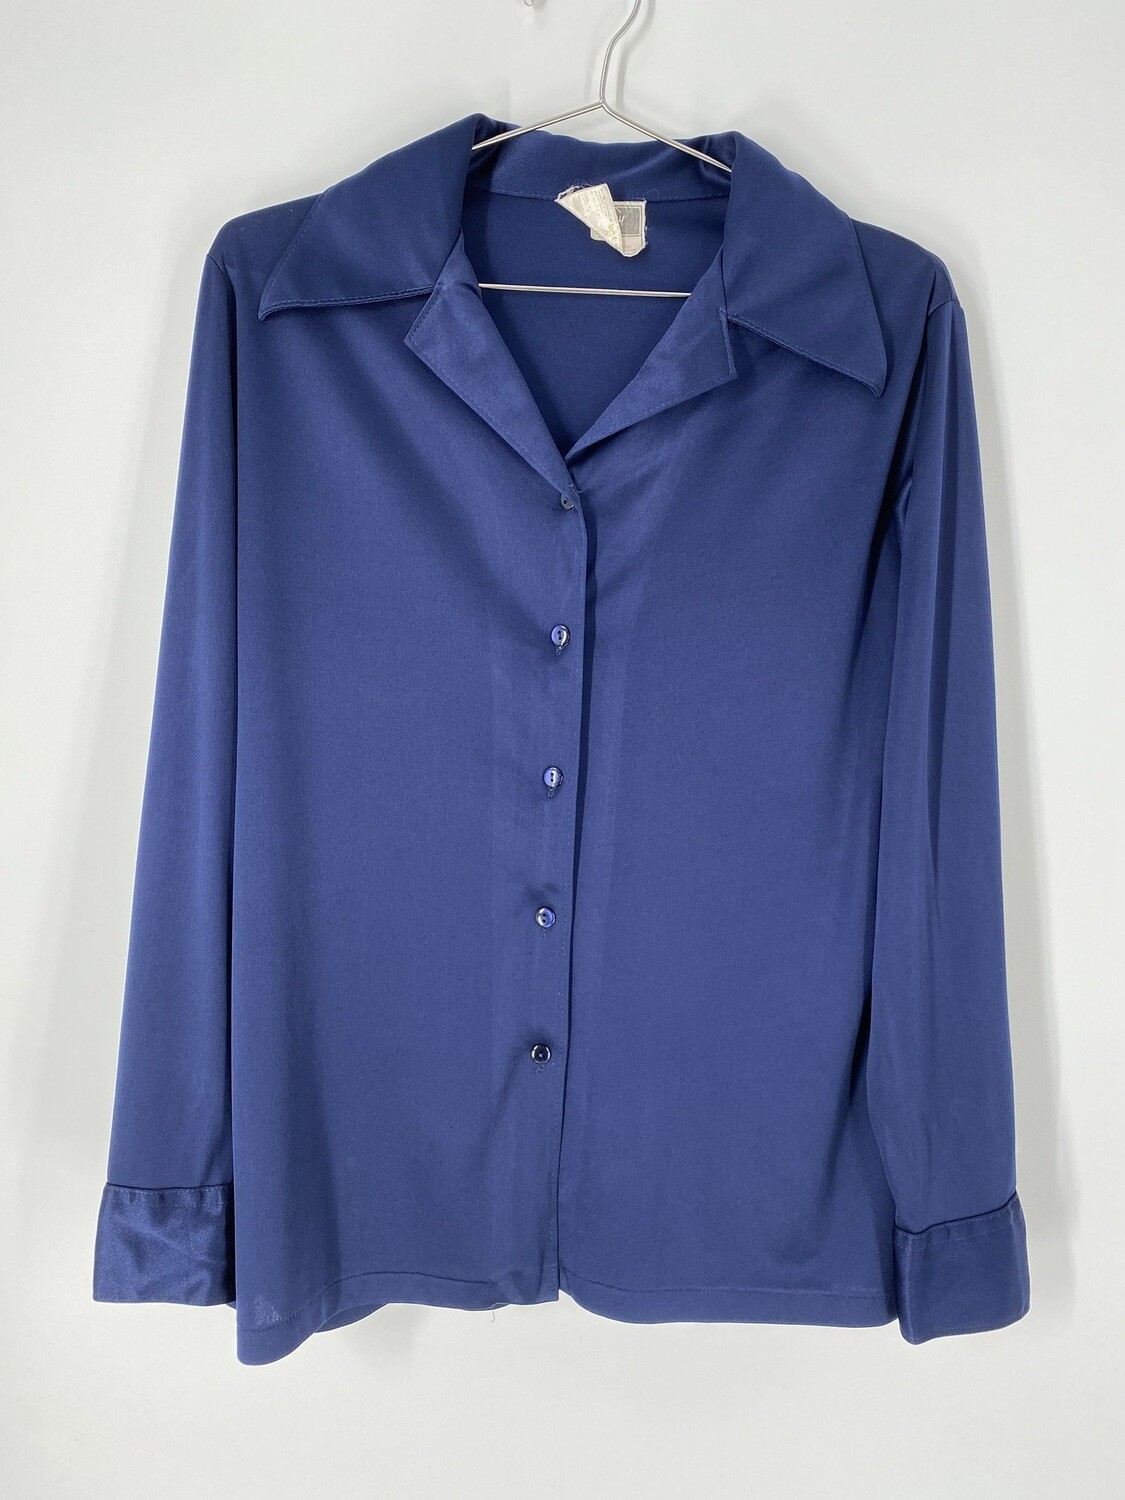 Tan F Jay Blue Sheen Button Up Size Medium